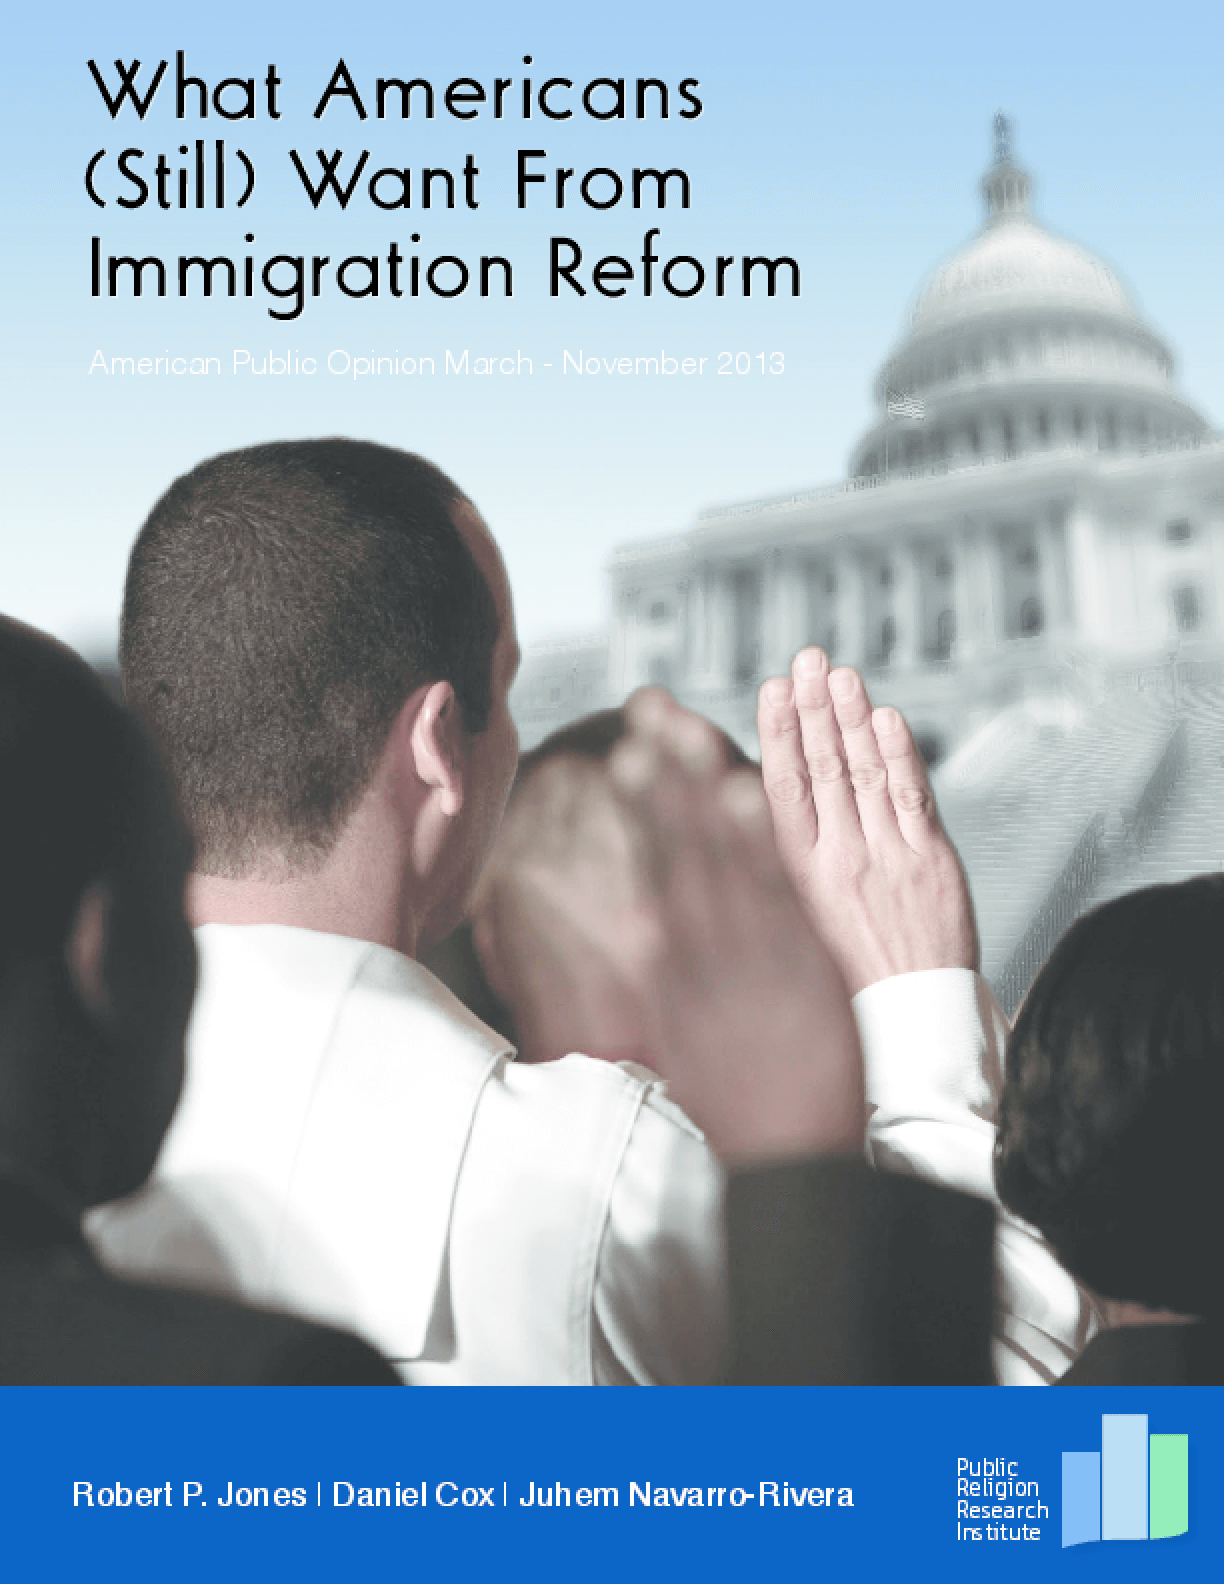 What Americans (Still) Want From Immigration Reform: American Public Opinion March-November 2013